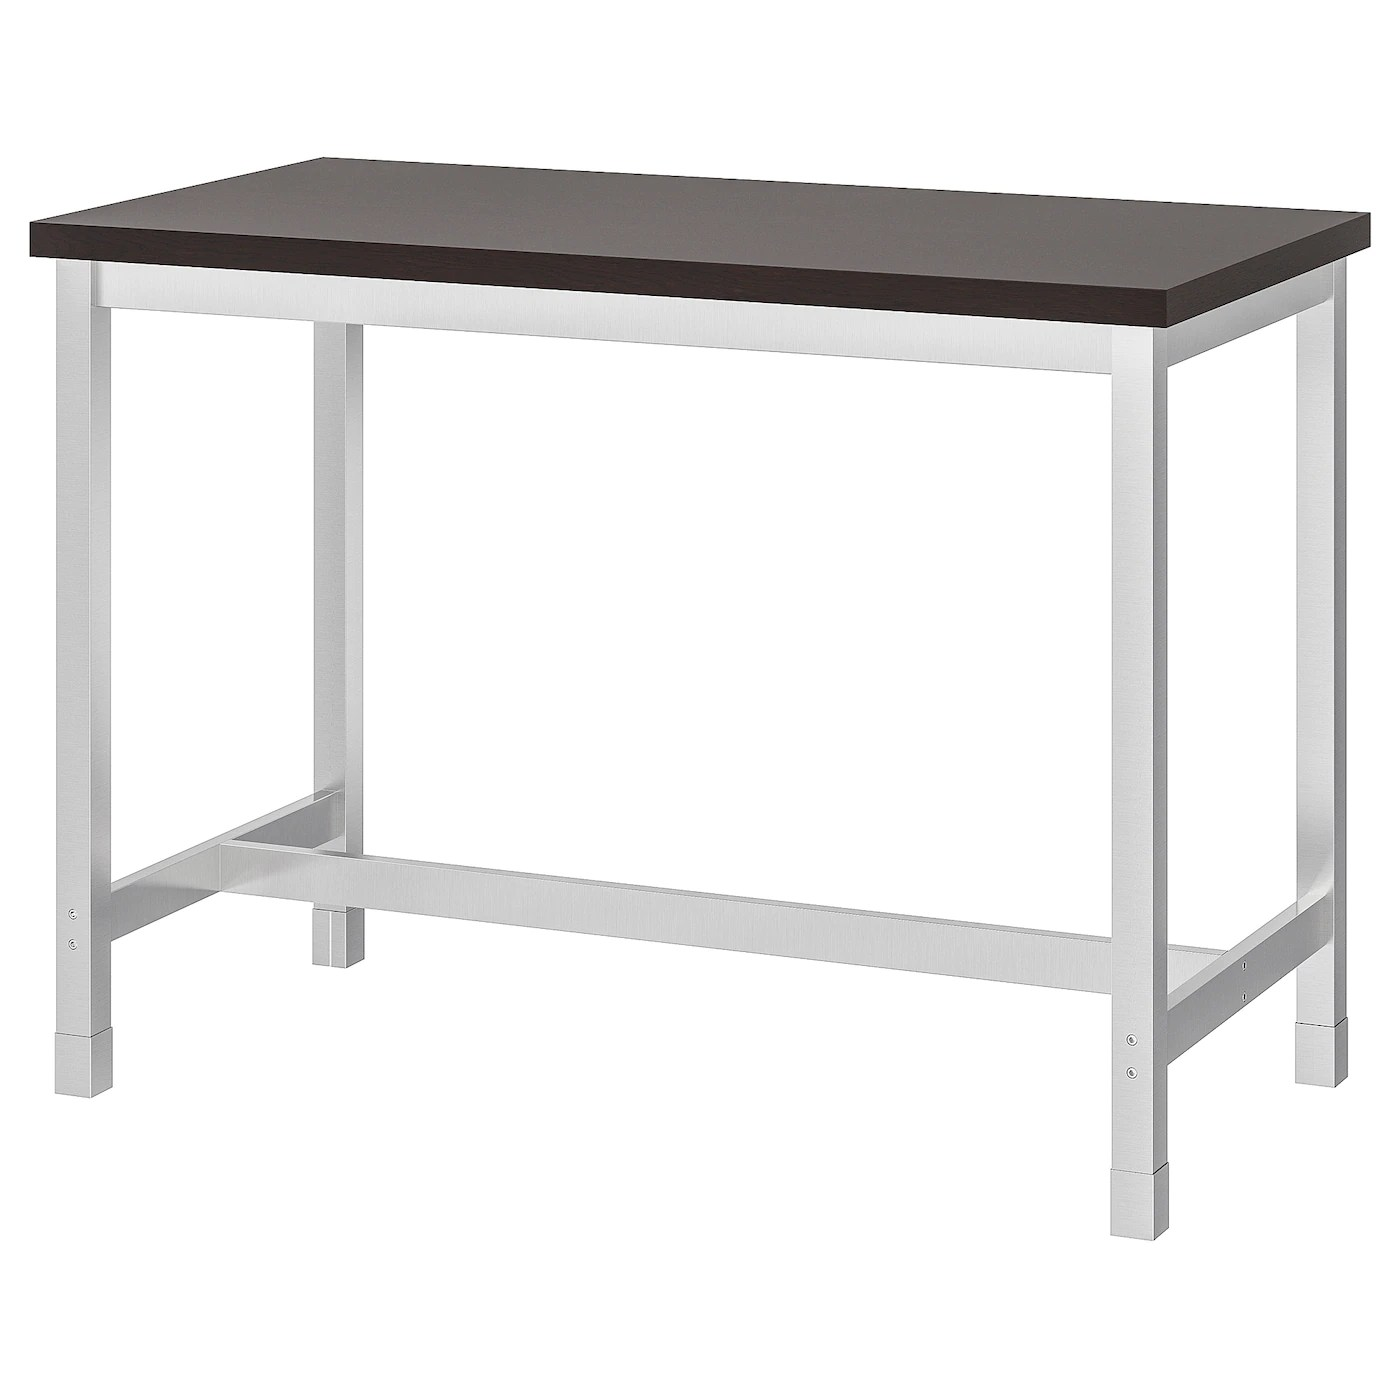 Utby Bar Table Brown Black Stainless Steel Ikea